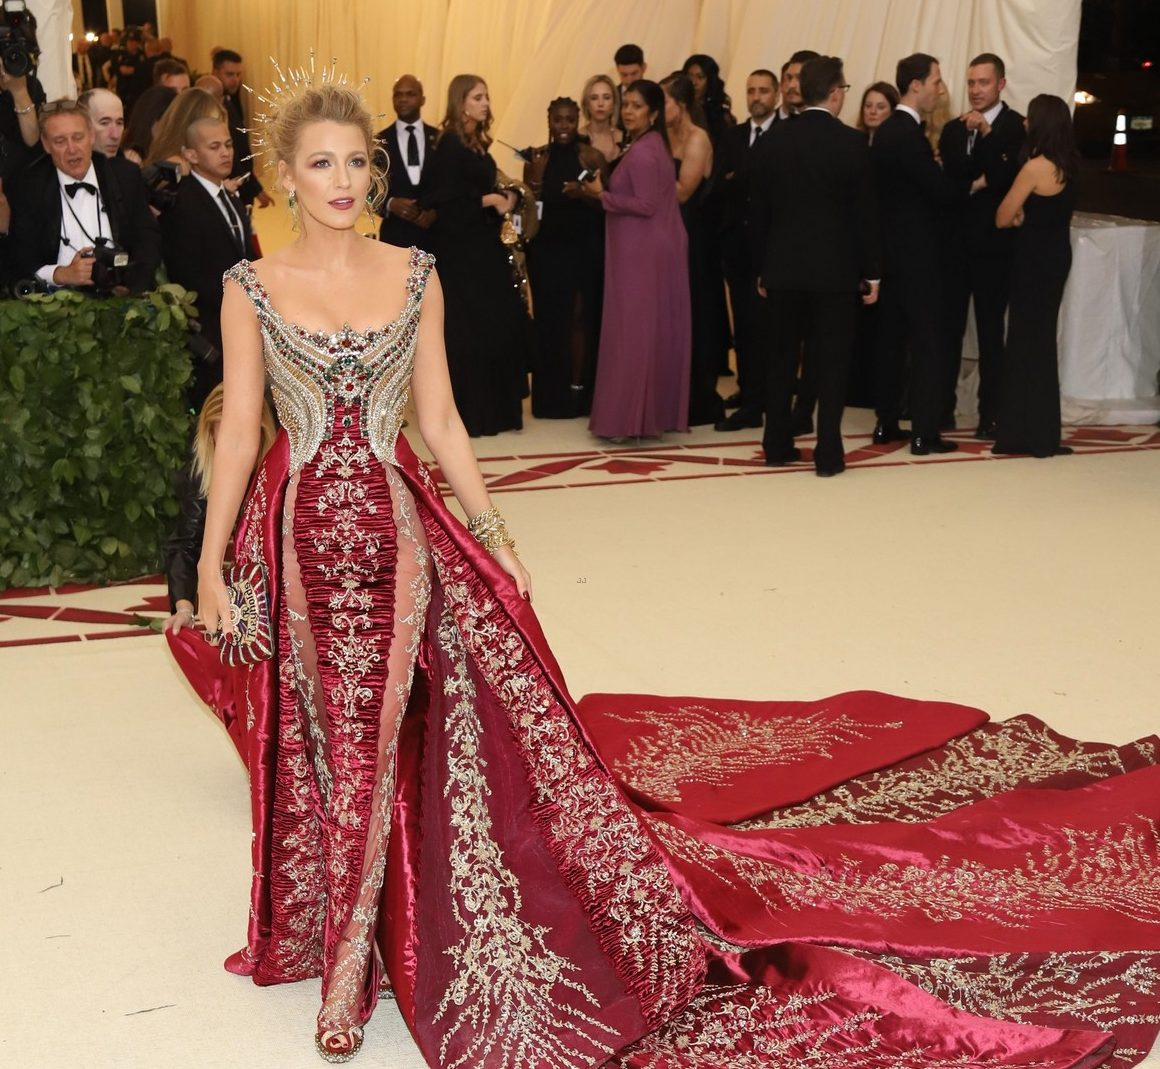 OVER THE TOP: Blake Lively Wears 'FAVORITE DRESS' and $2 MILLION JEWELS to Met Gala 2018 image